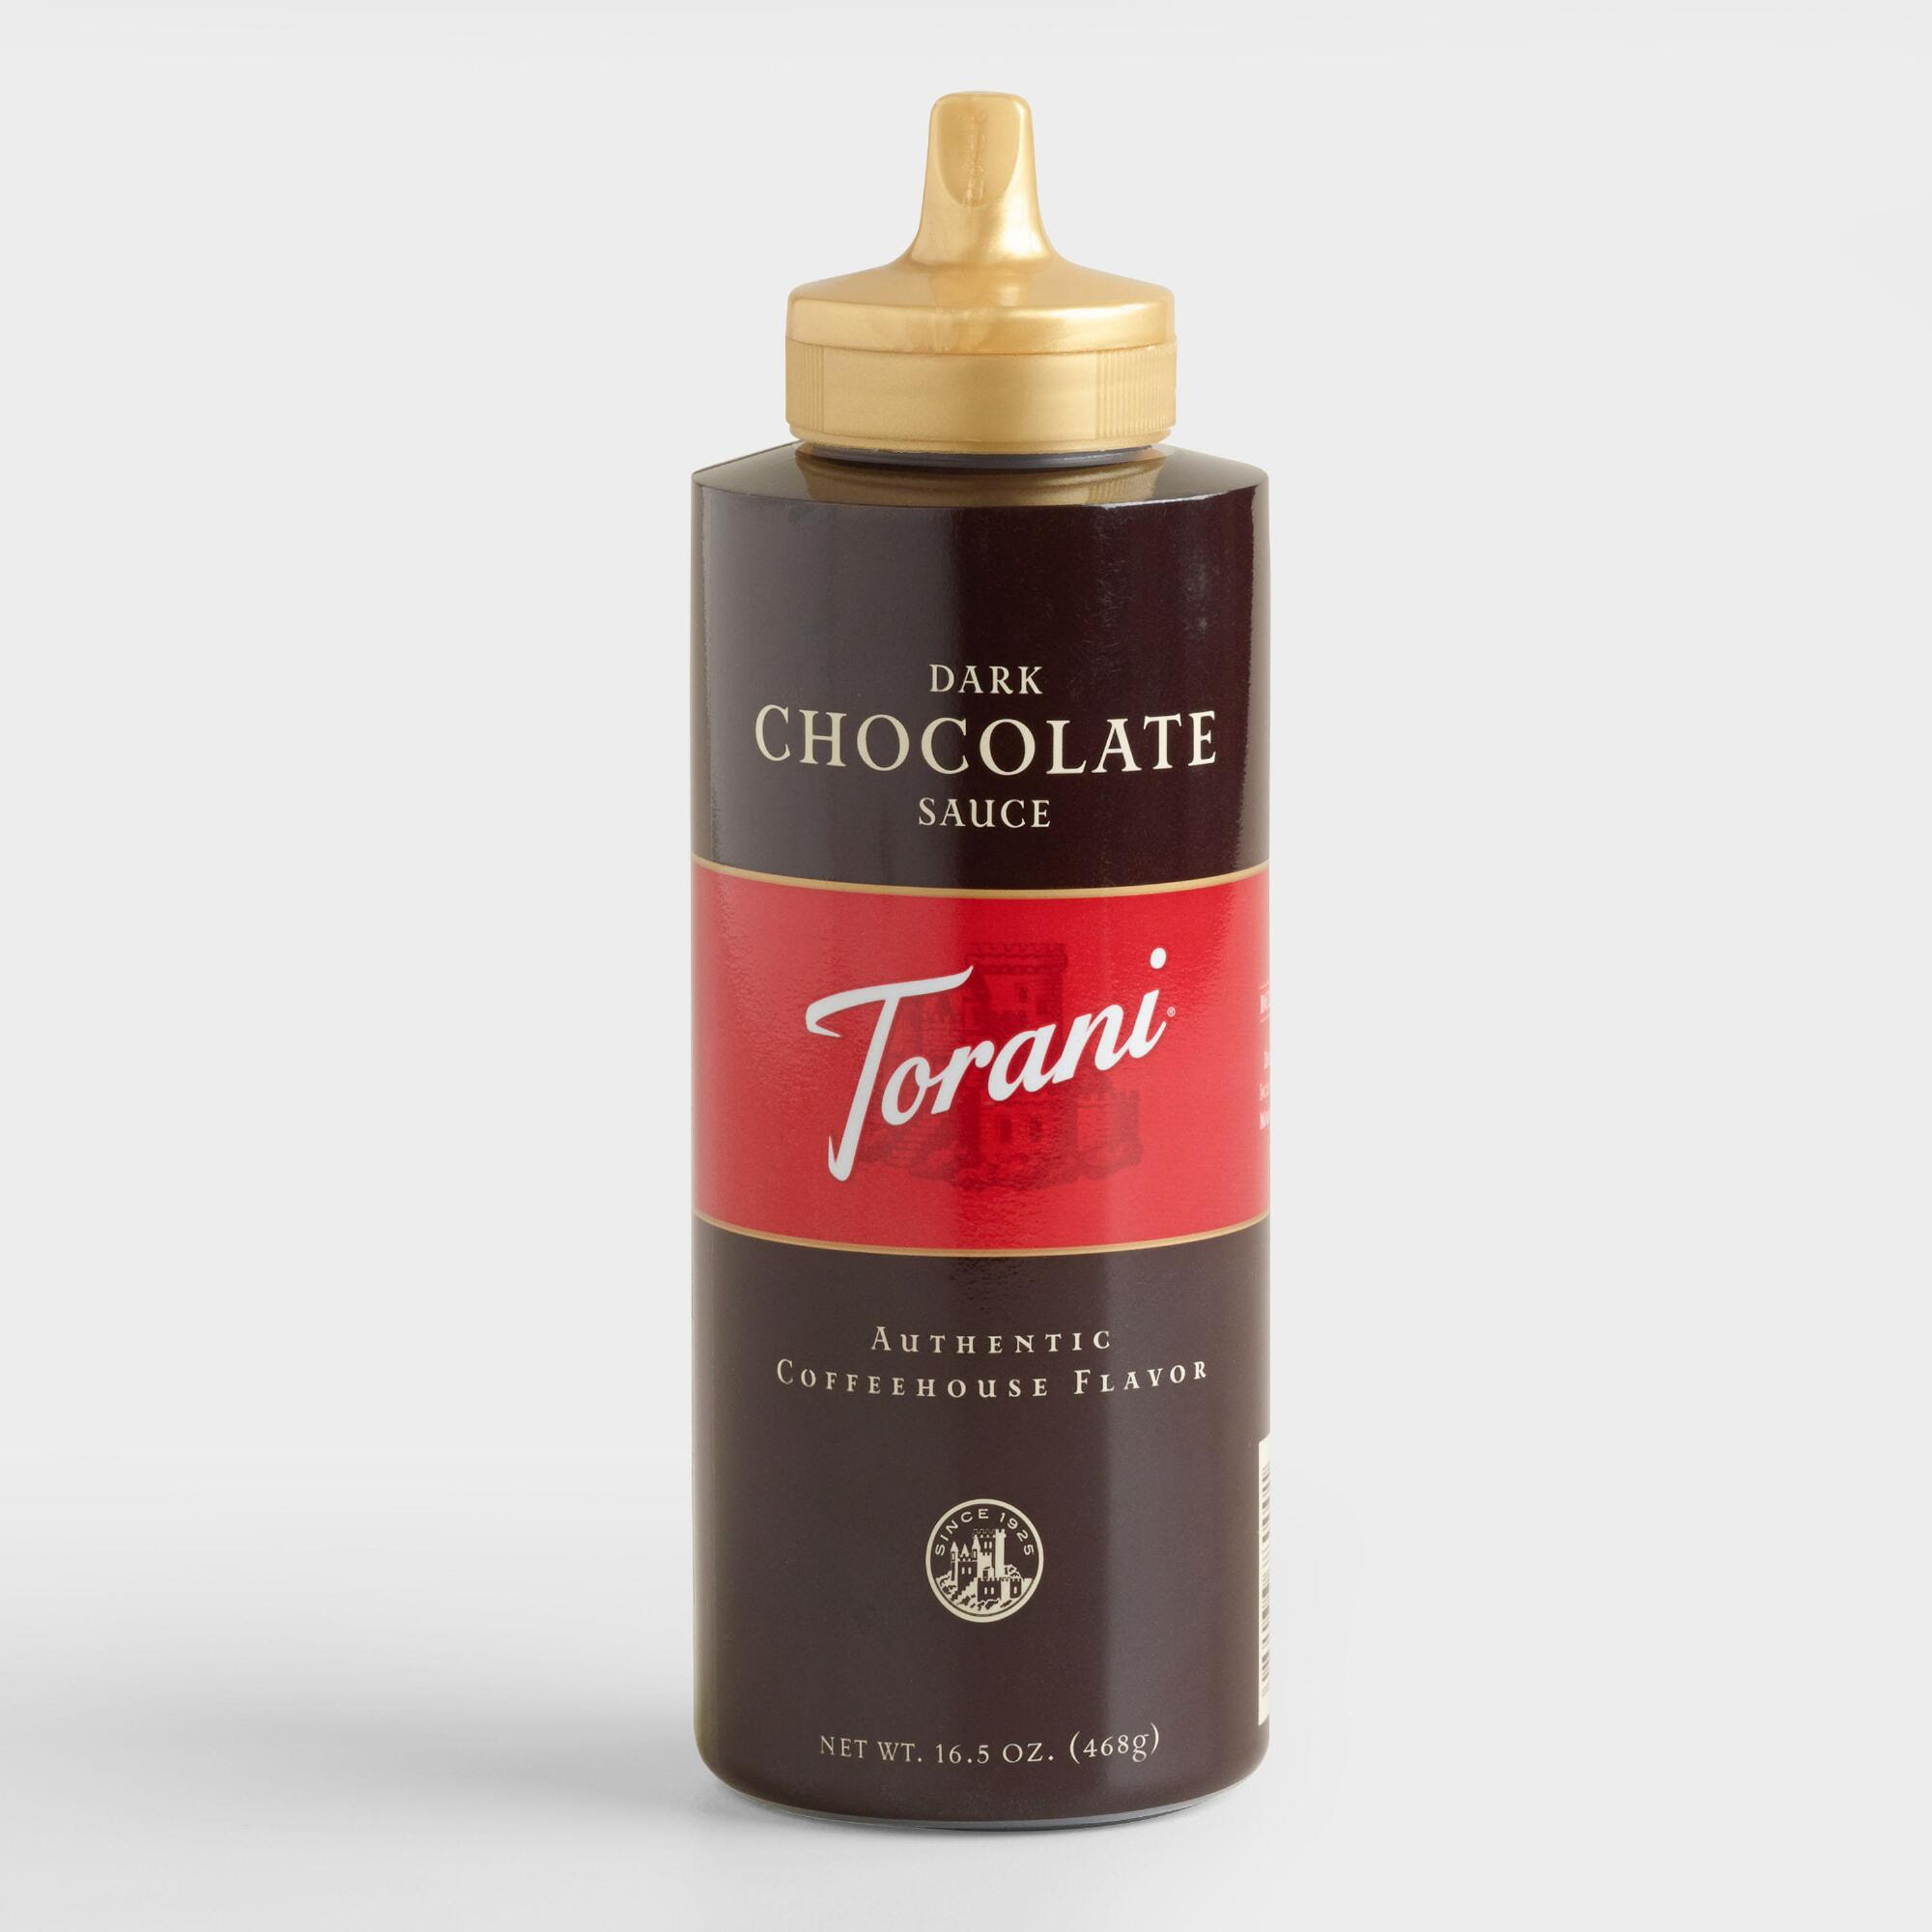 Torani Dark Chocolate Sauce from Cost Plus World Market